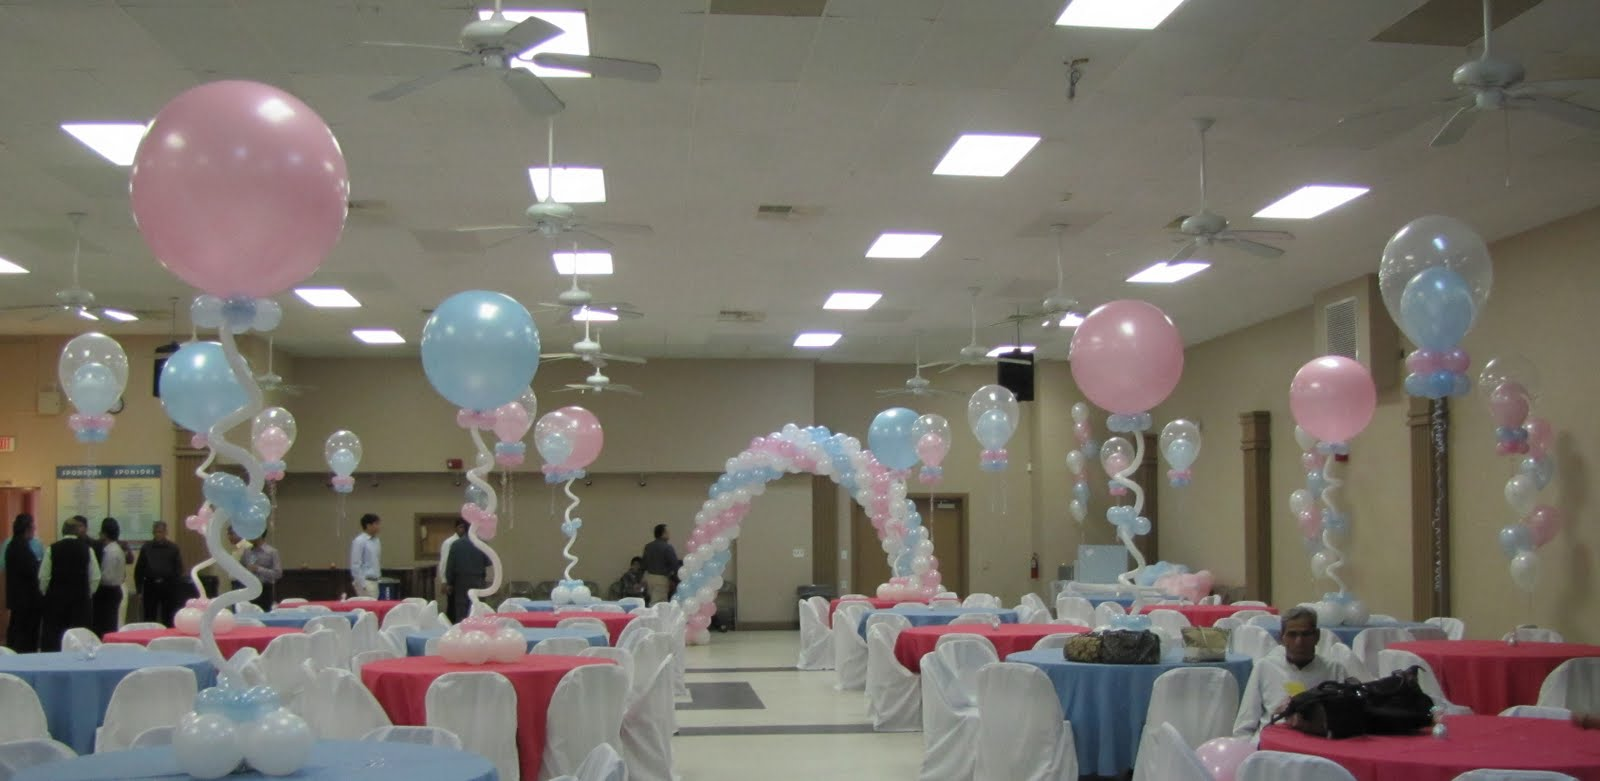 Baby Shower Room Set Up Ideas baby shower room decorations Gallery